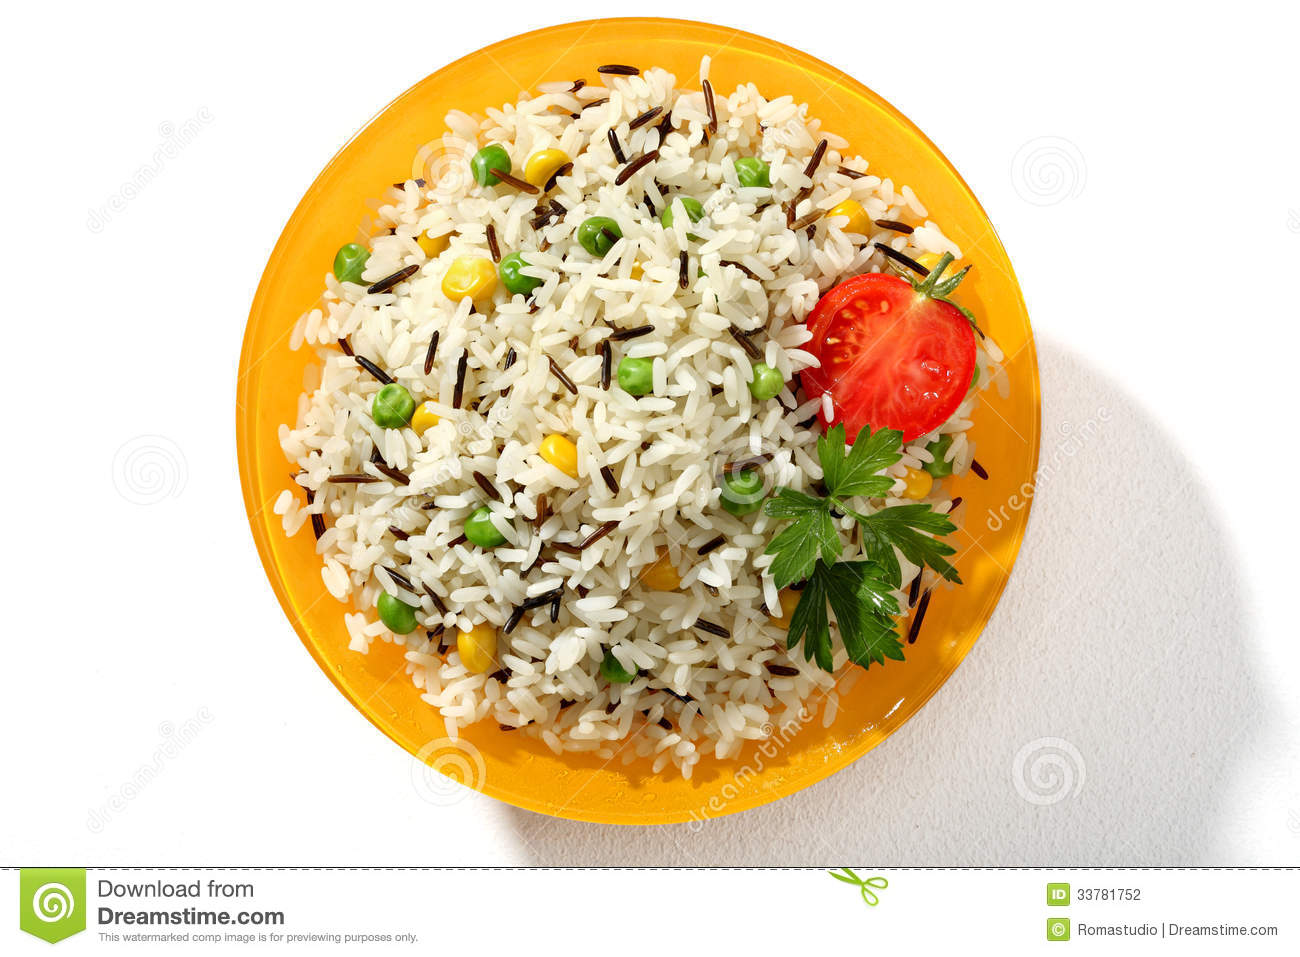 Dish Of Black & White Rice In An Orange Plate Stock Photo.